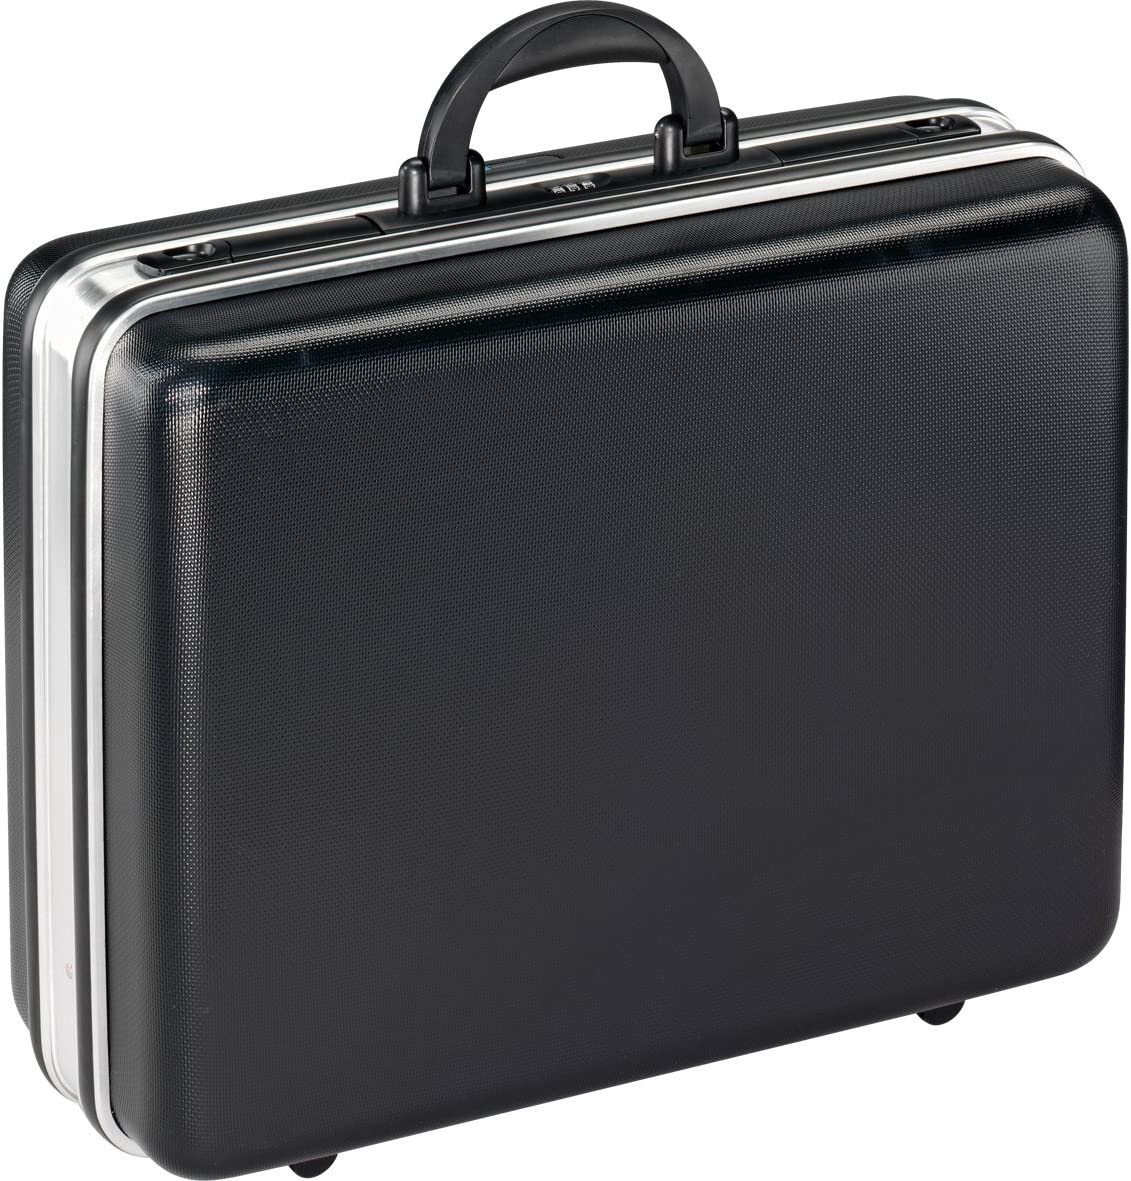 Cases By Source TUC-11402-P Rugged Electrician's Tool Case